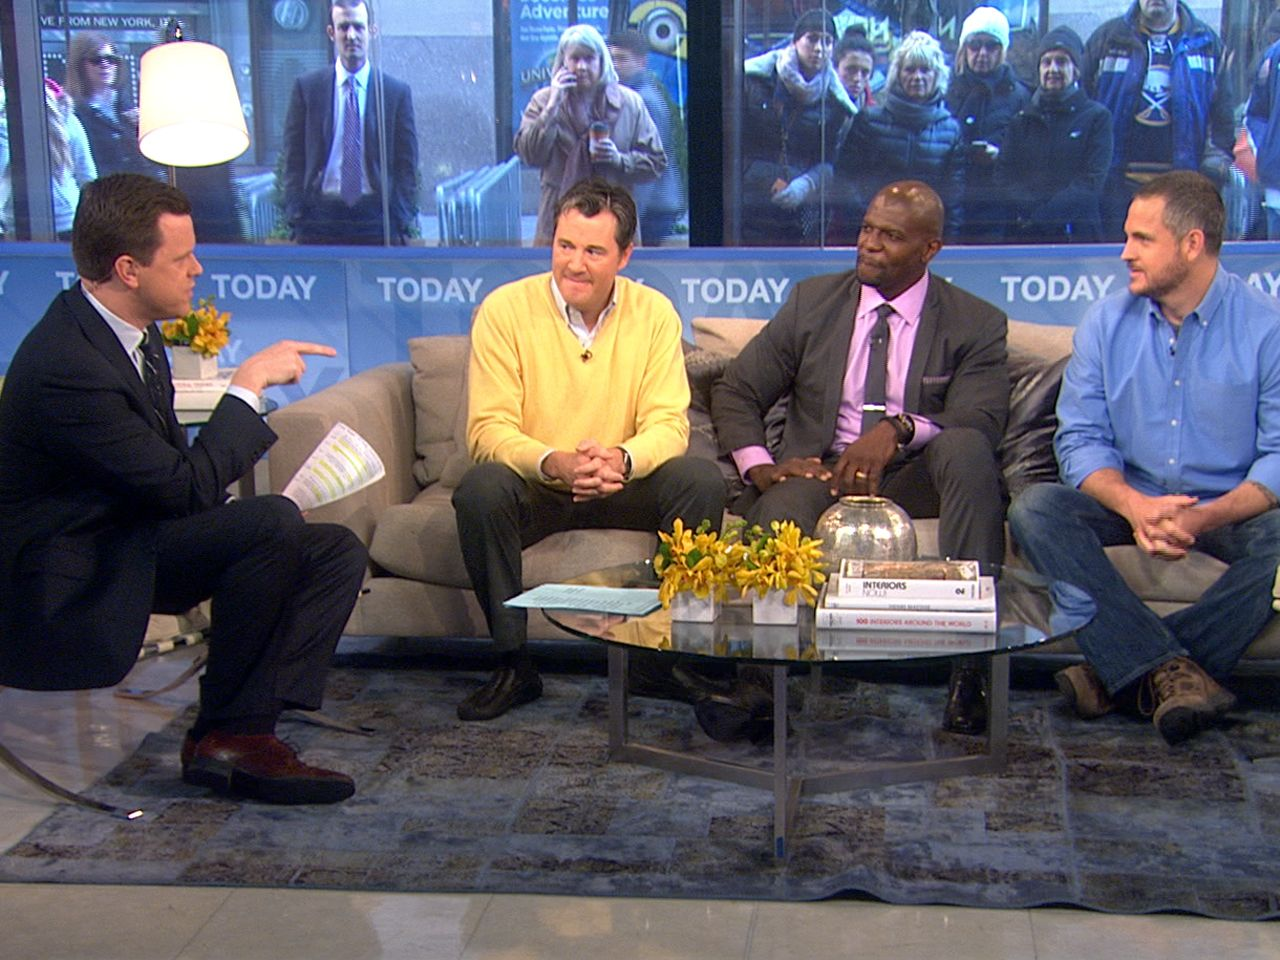 TODAY's Willie Geist and a panel of three men from various walks of life – marriage and family therapist Hal Runkel, actor and father of five Terry Crews, and author Sam Sheridan – give a guy's perspective on common relationship and family issues.